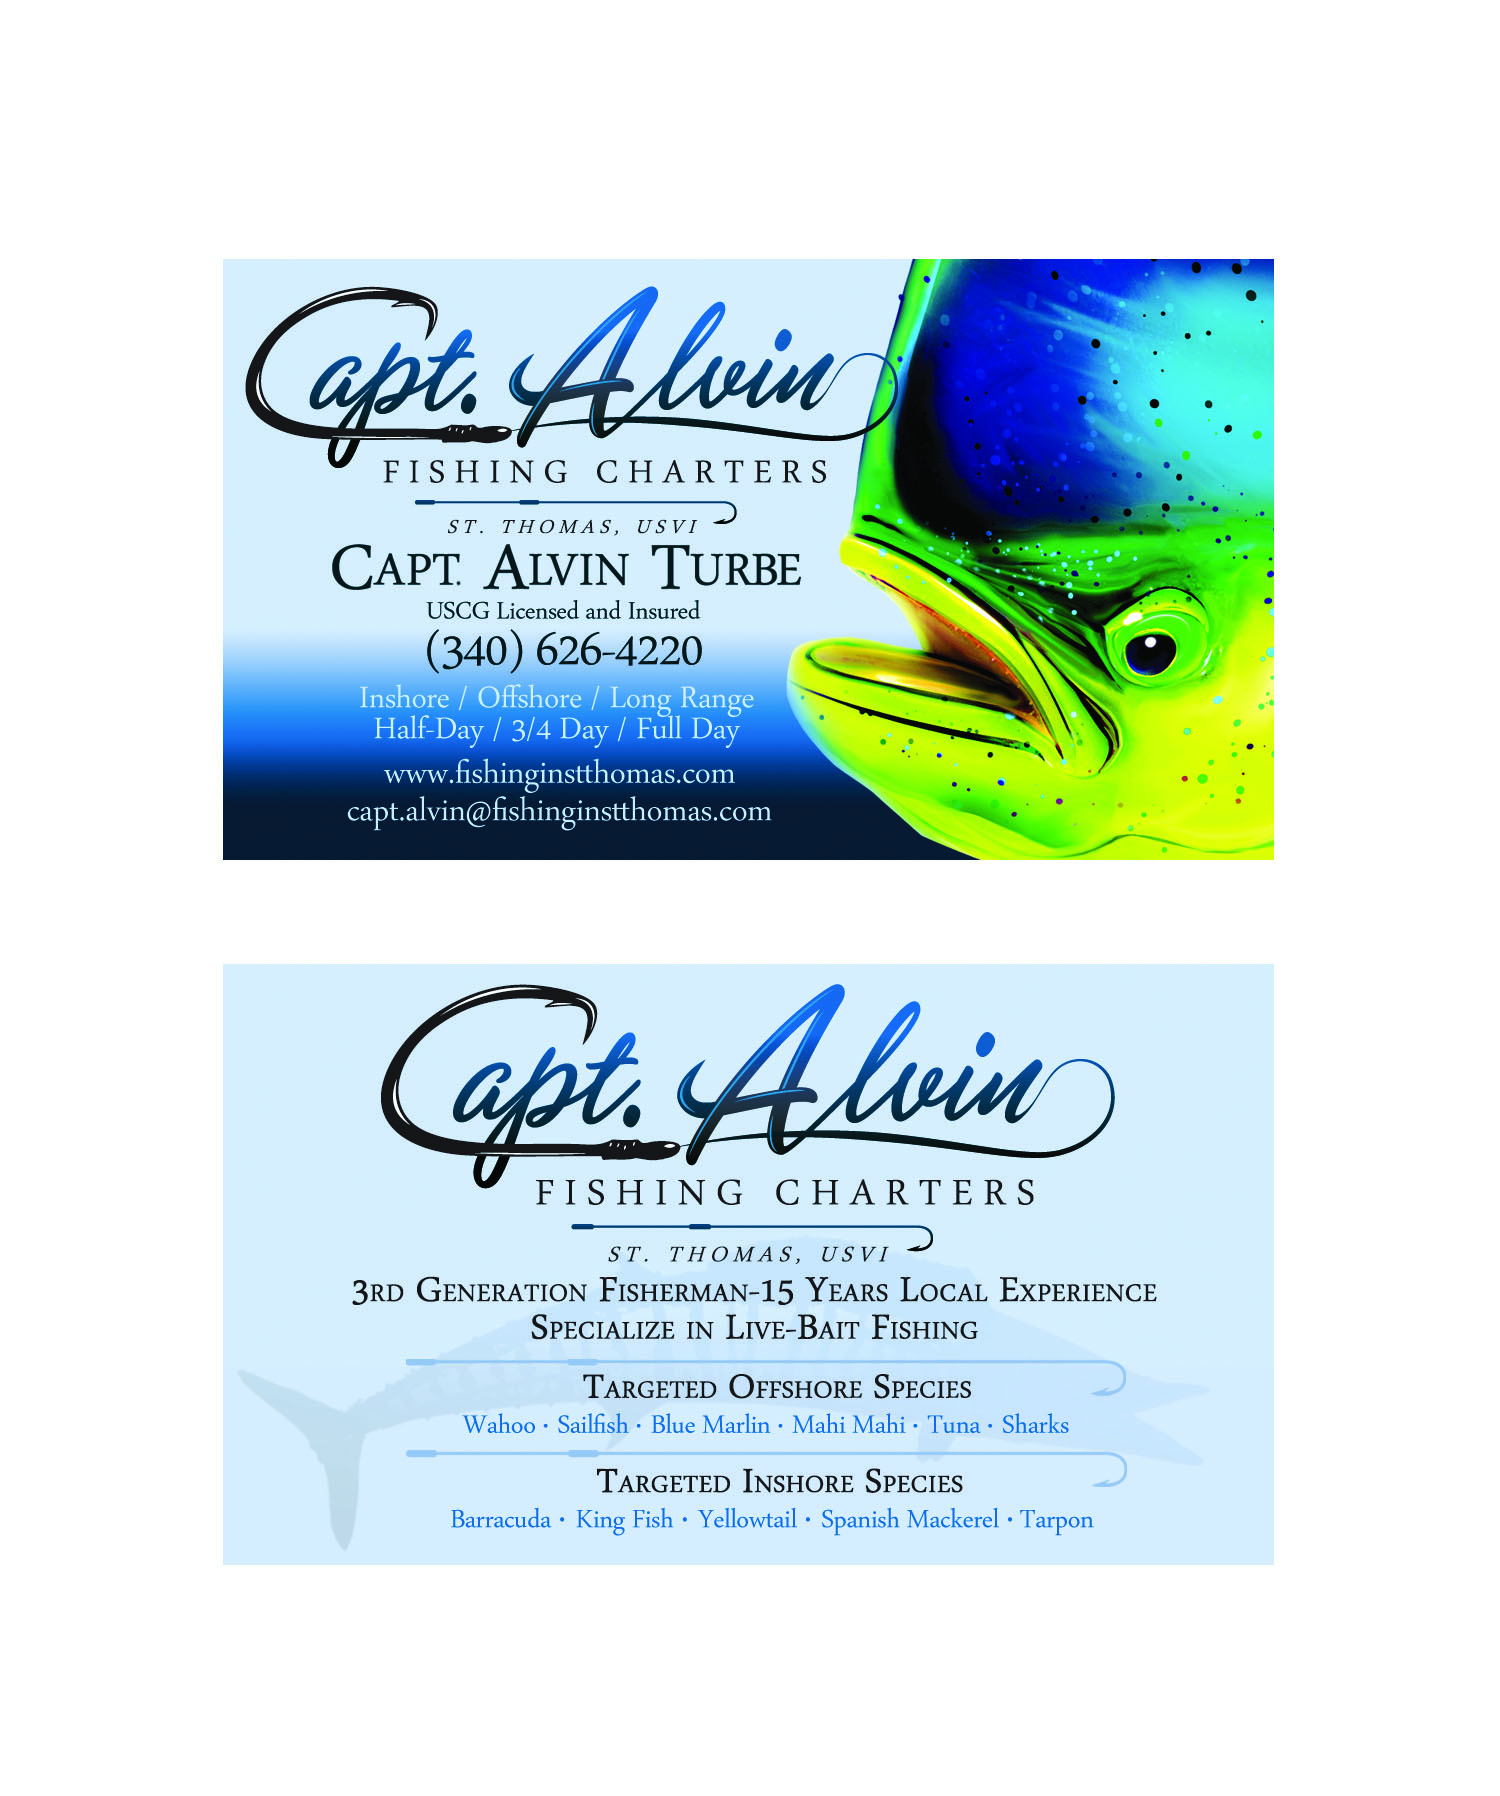 Capt alvin charters st thomas marine logos websites for Fishing business cards